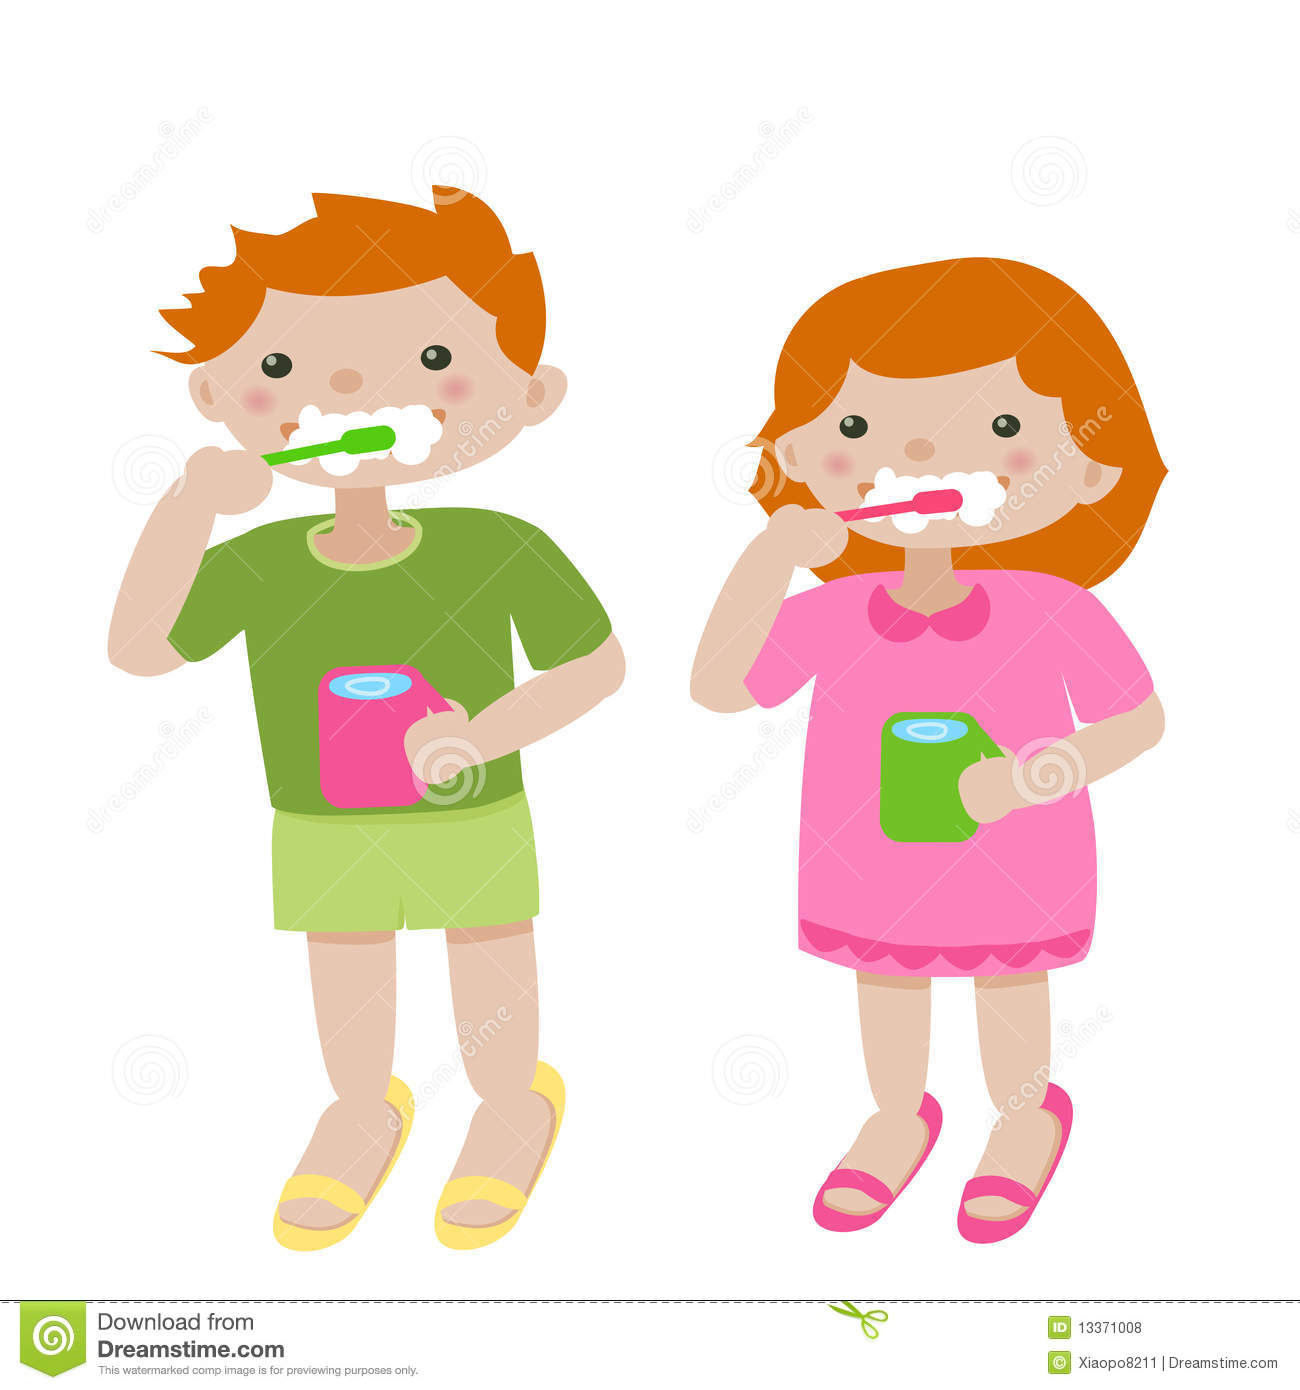 brush teeth clipart.